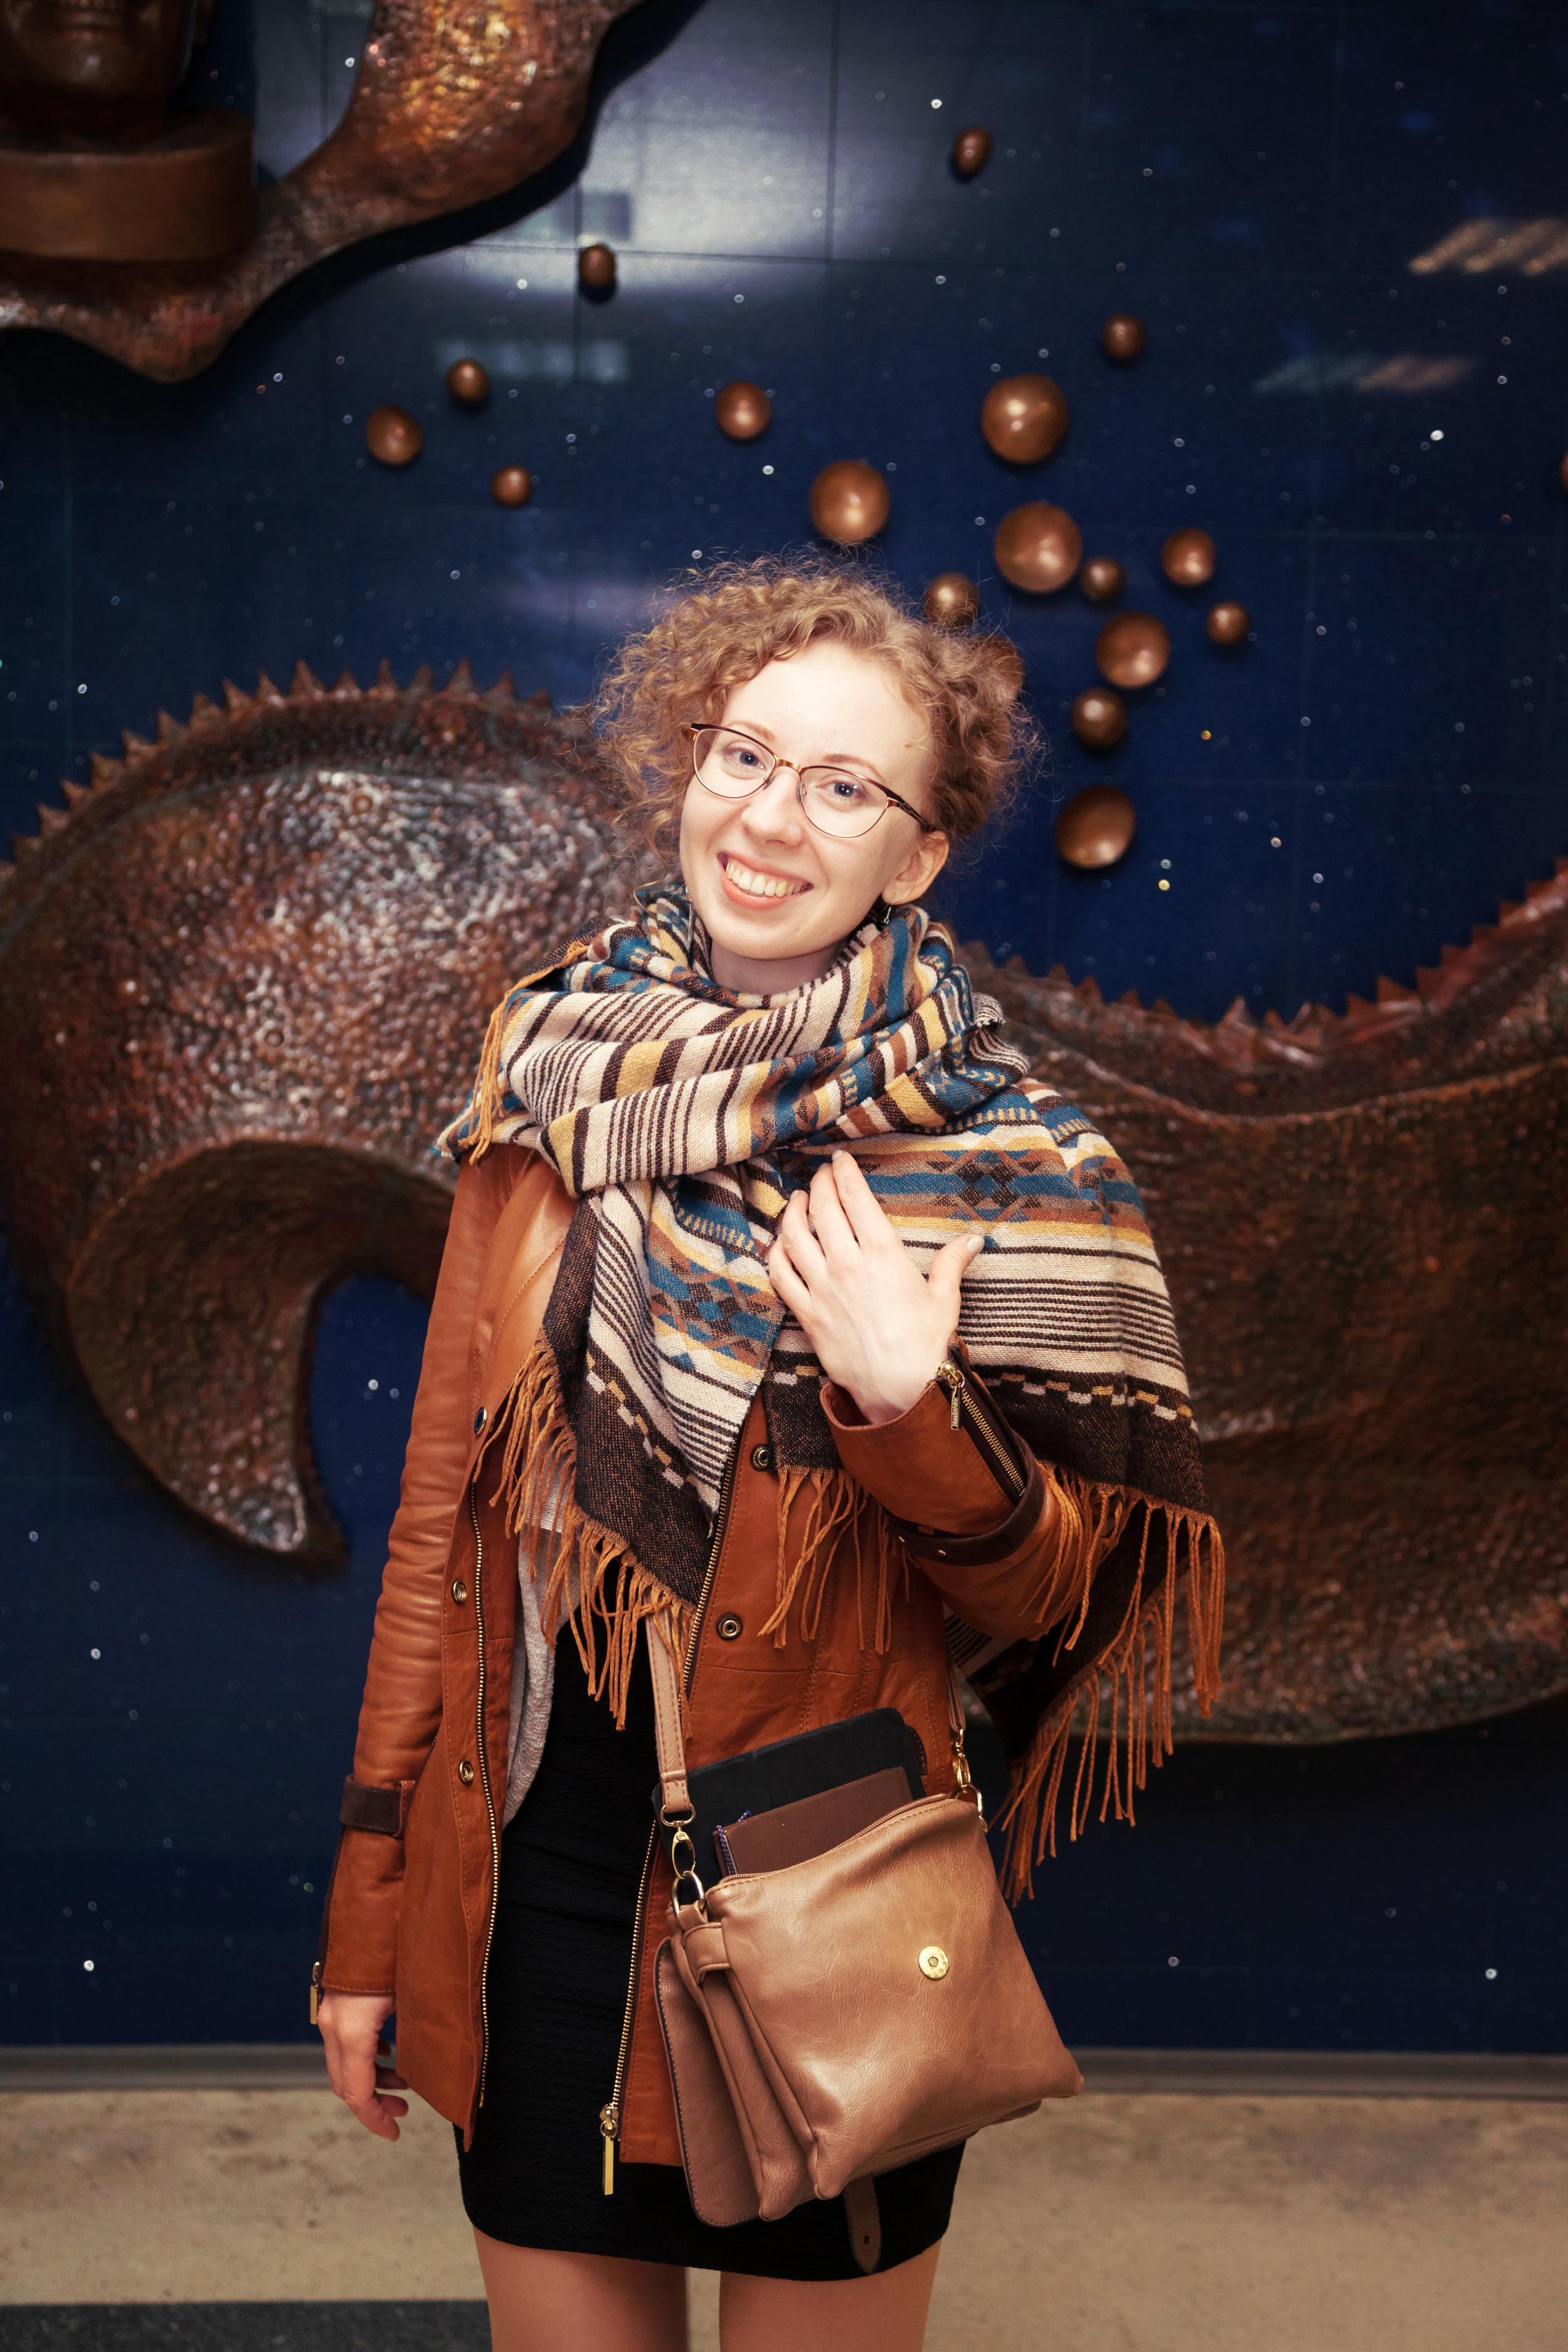 Anastasia Prosochkina at the exhibition in The Cosmonaut Museum, Star City,Moscow (The Cosmonautics day celebration,her space art were exhibited with paintings of the cosmonaut Alexei Leonov)